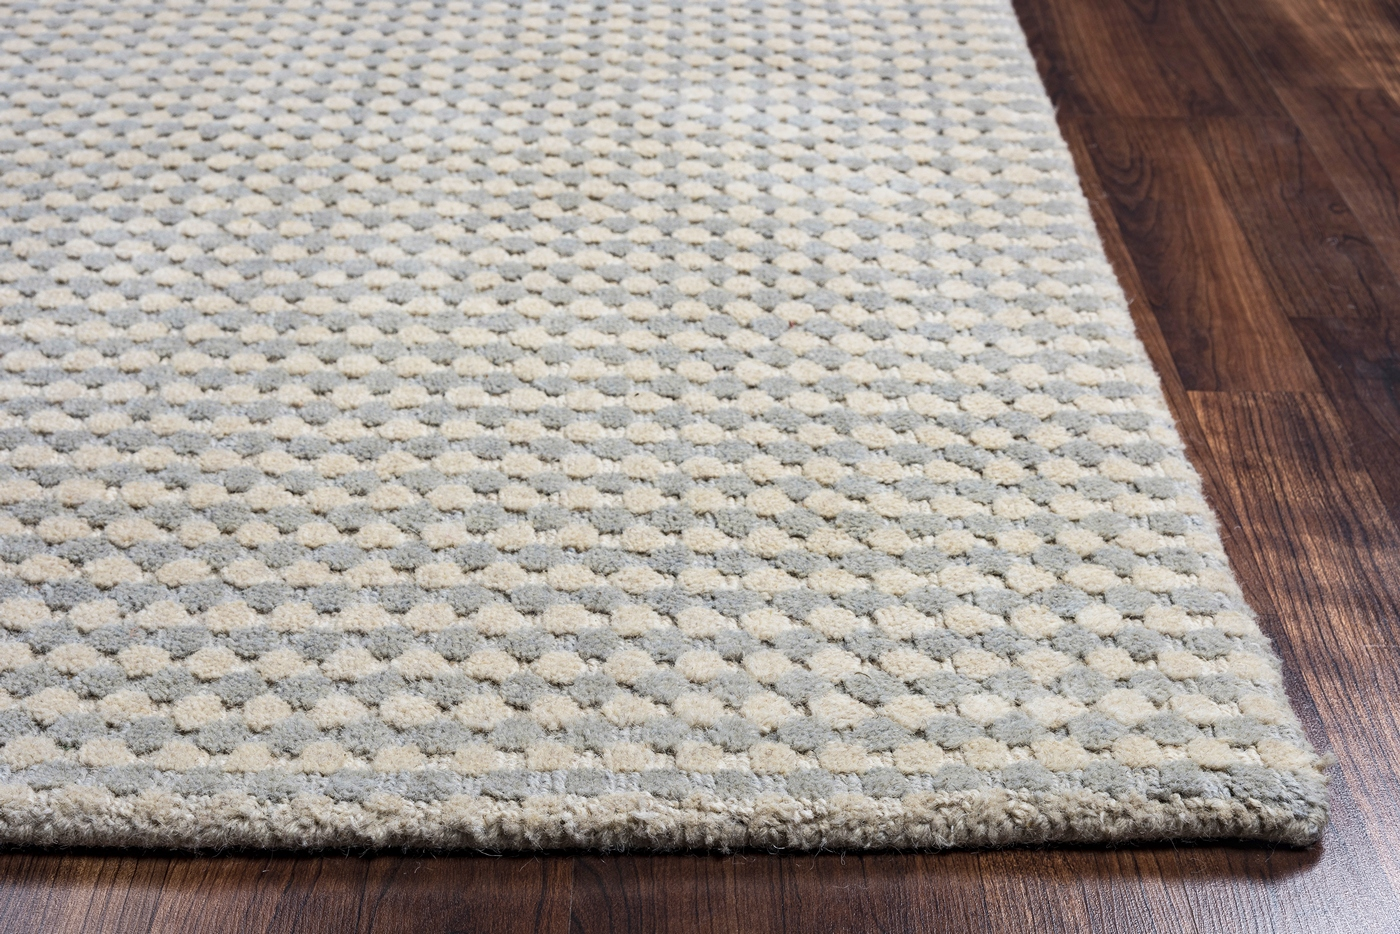 Grey Tan And Brown Area Rug: Platoon Dotted Pattern Wool Area Rug In Blue Grey & Brown